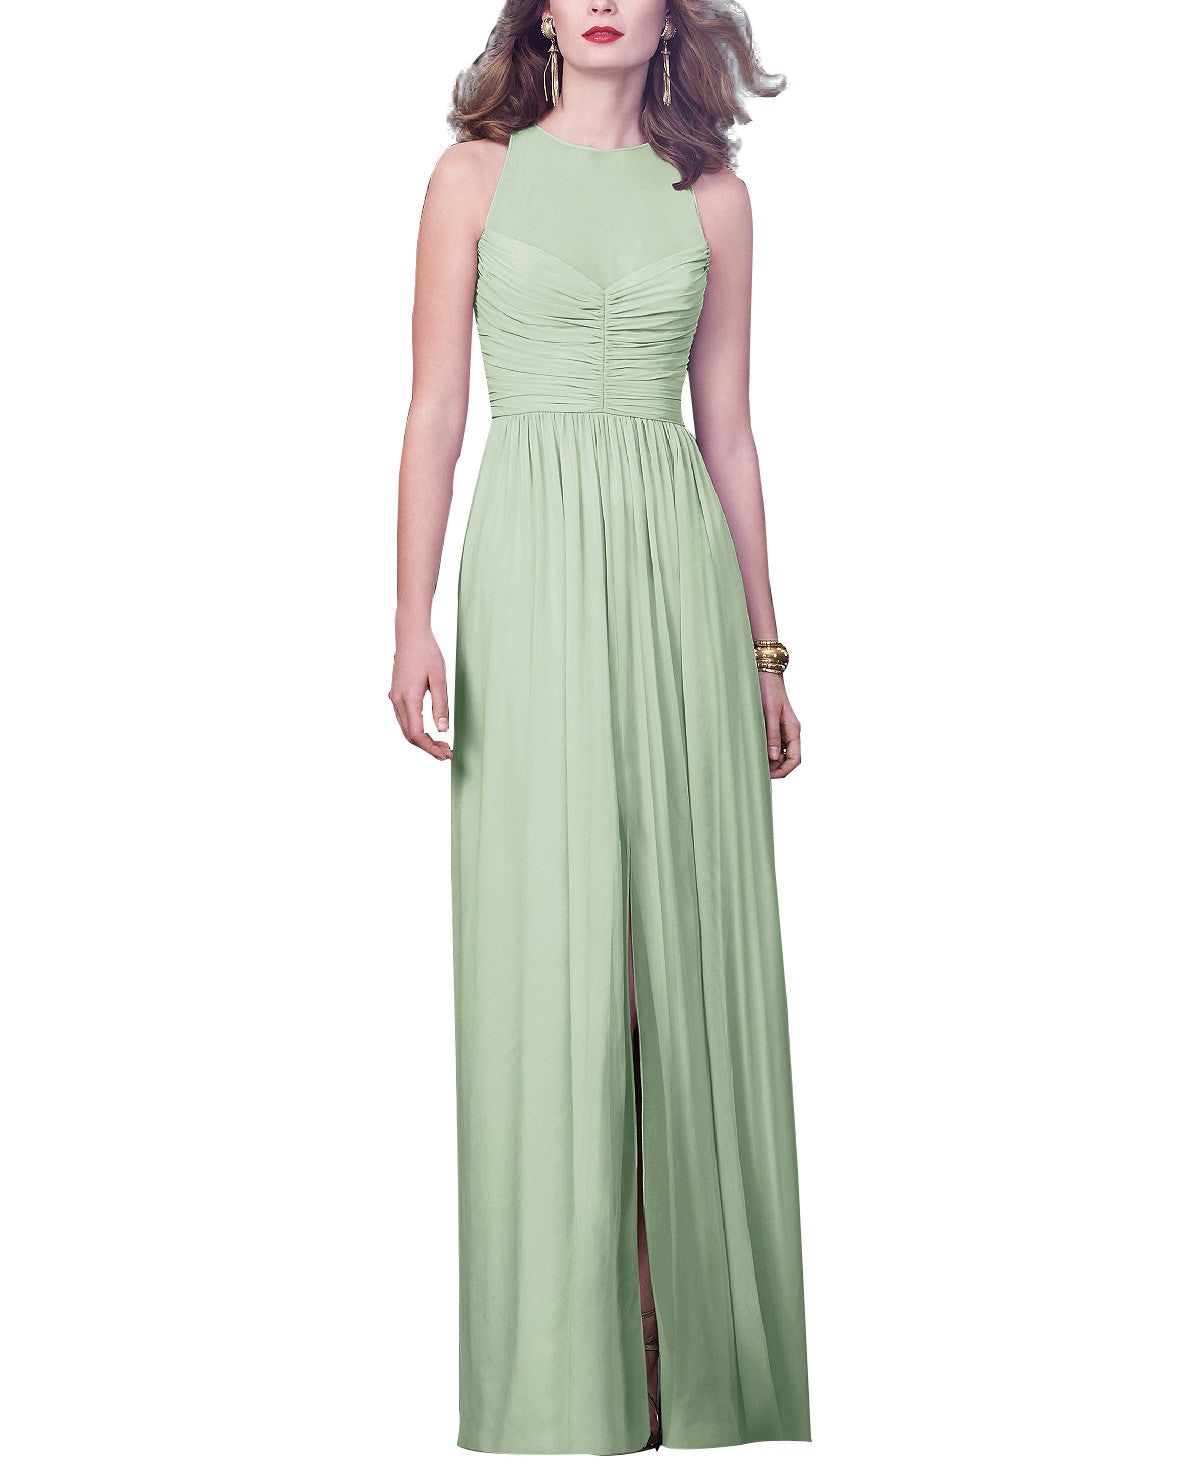 Dessy collection style 2920 bridesmaid dress brideside dessy collection style 2920 ombrellifo Image collections